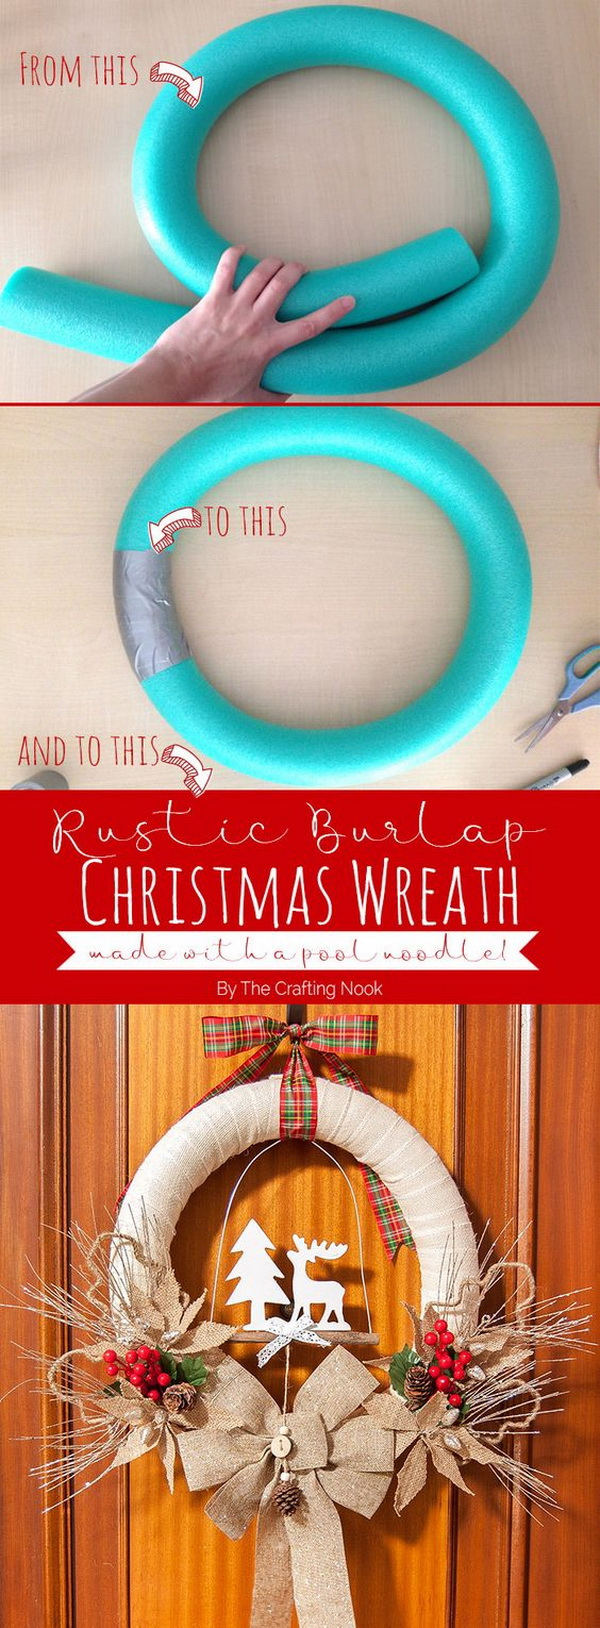 Rustic Burlap Christmas Wreath.